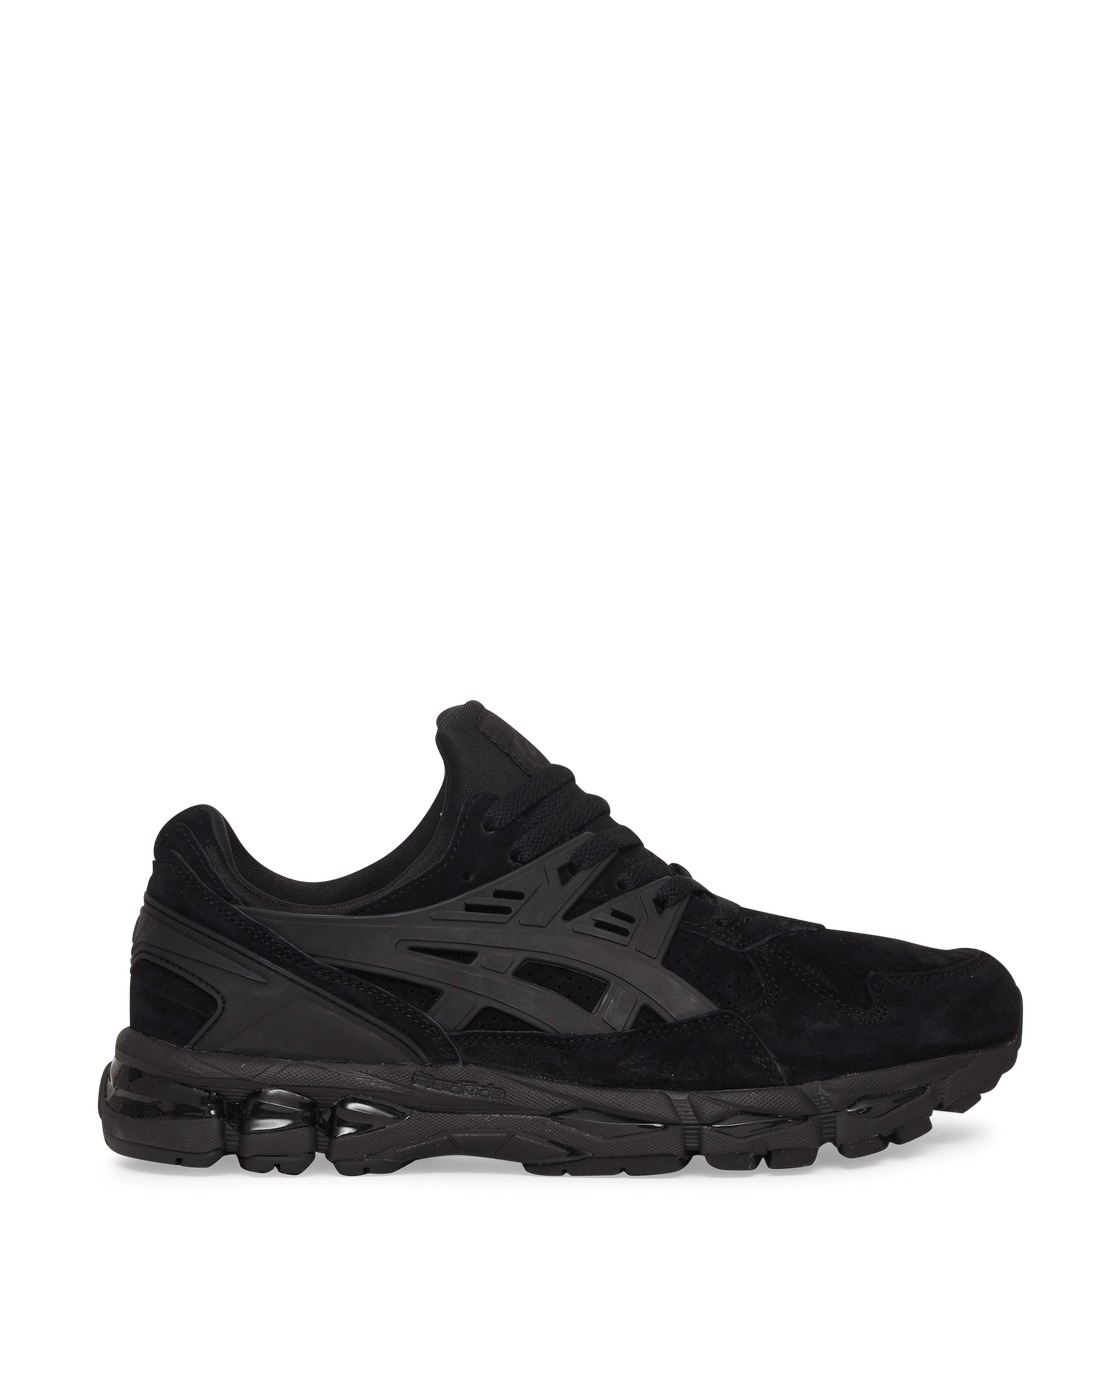 Photo: Asics Gel Kayano Trainer 21 Sneakers Black/Black